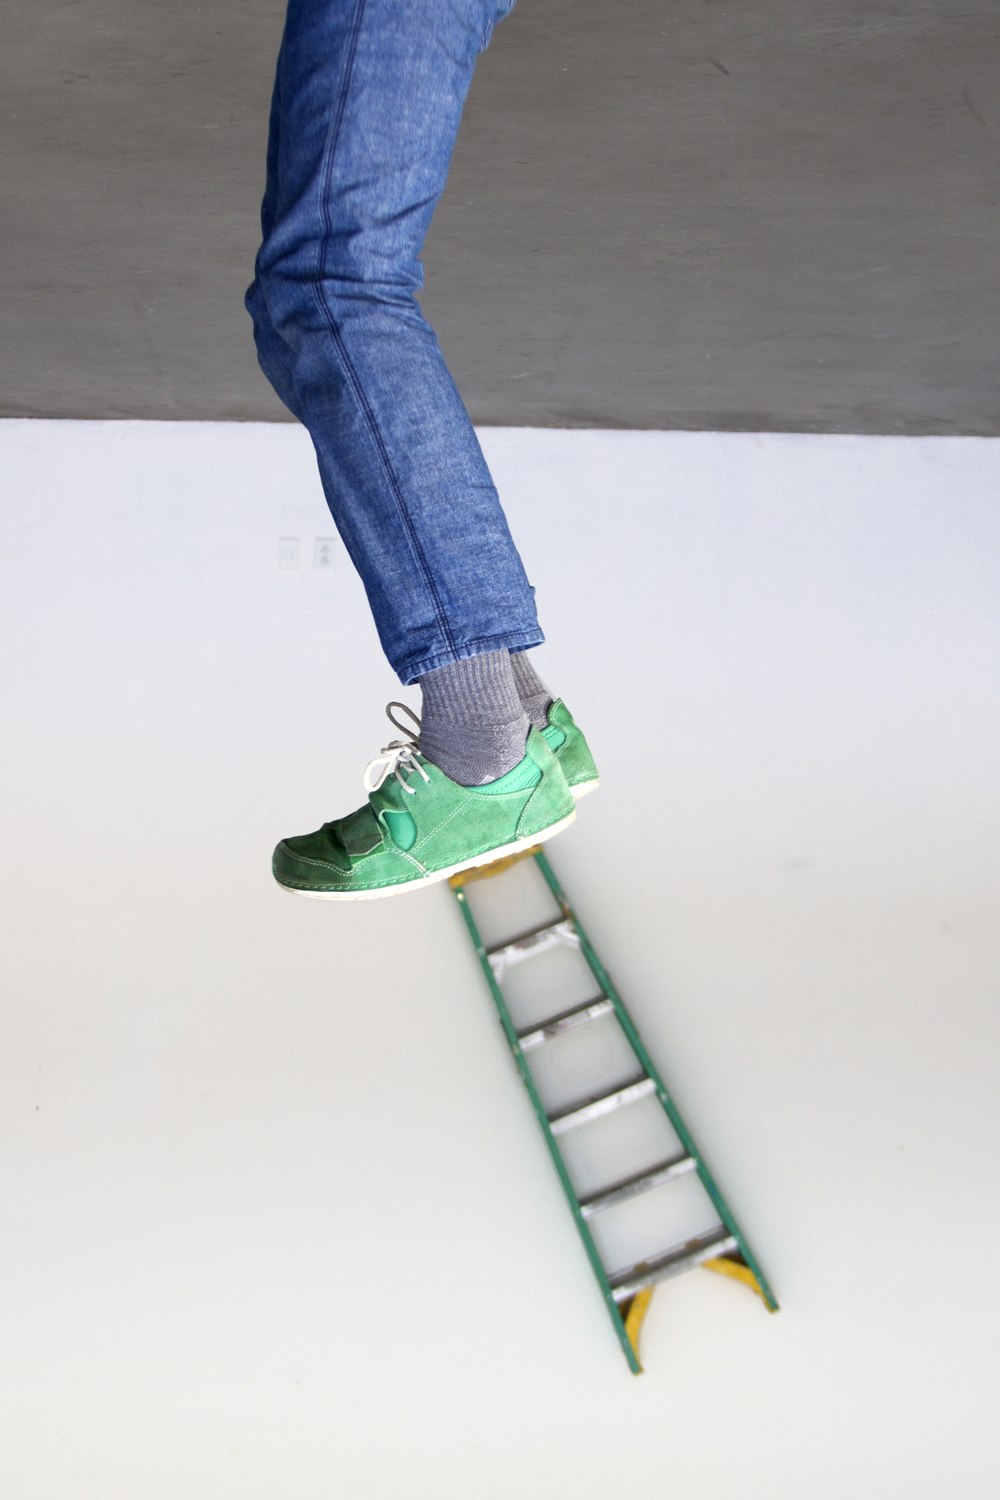 ladder_stand2_no_lbl.jpg